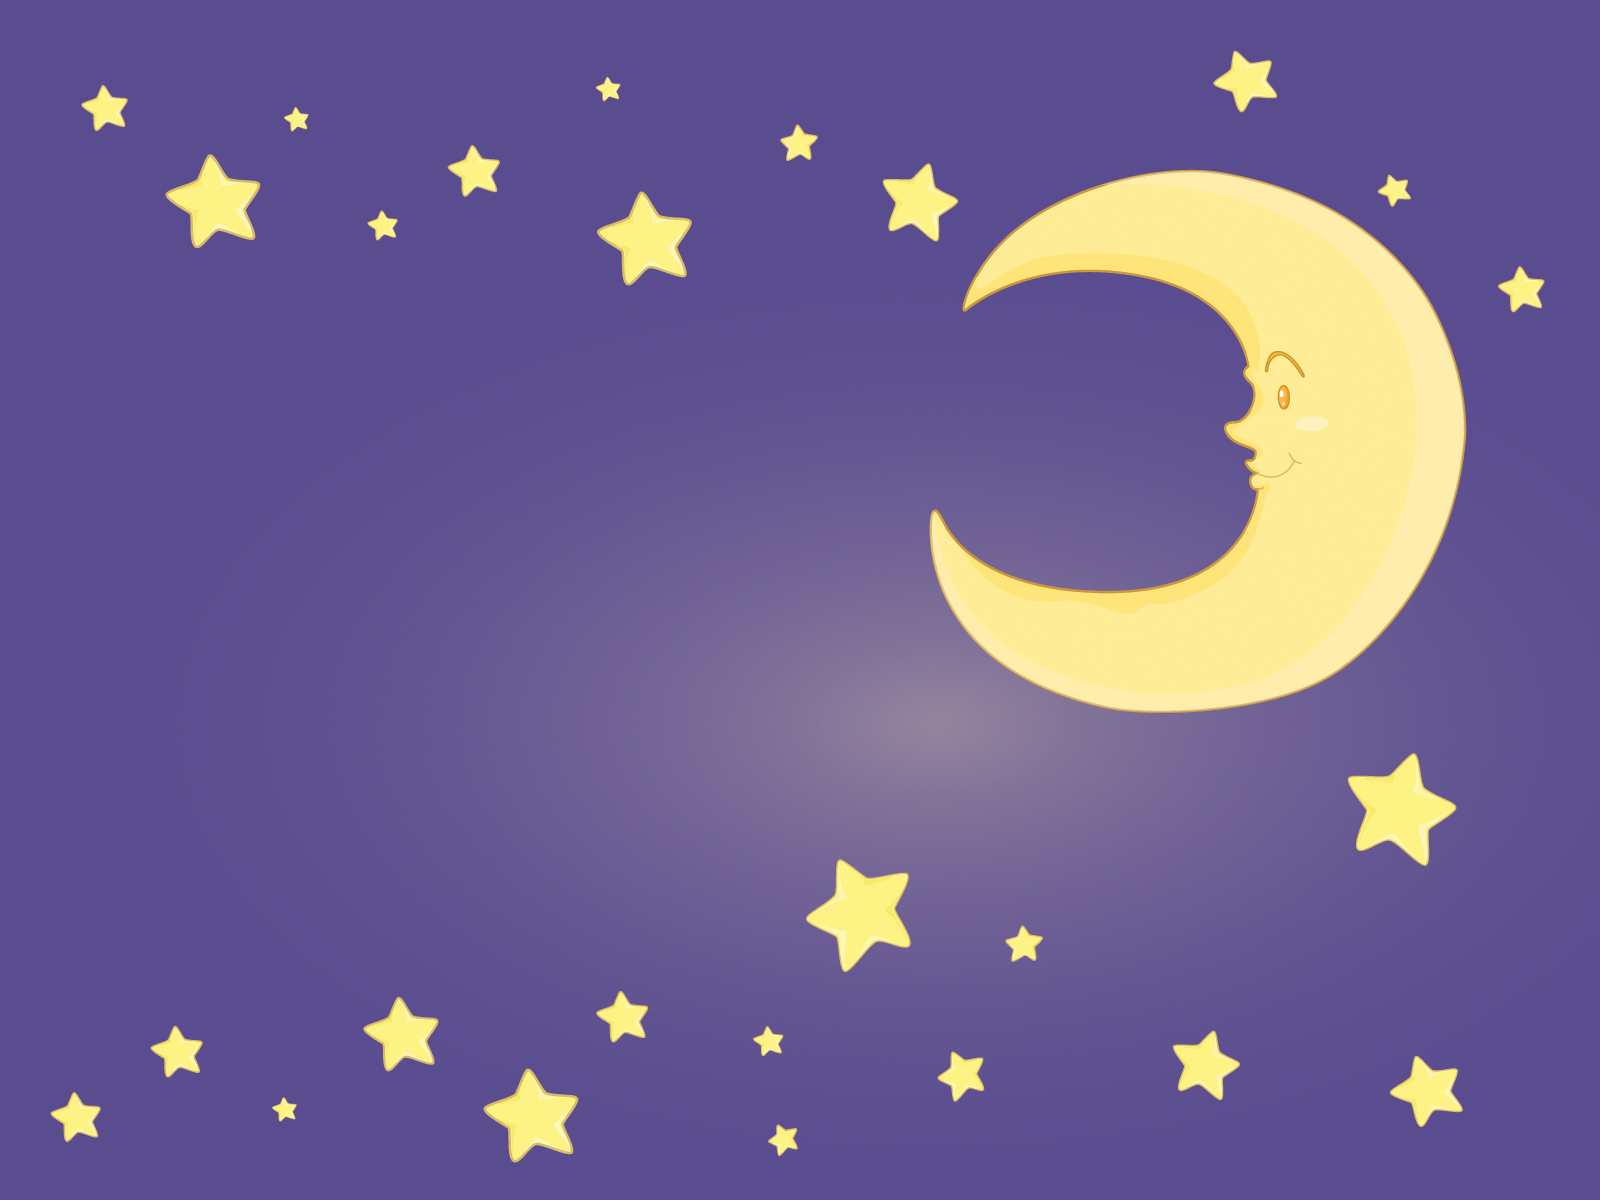 free clip art moon and stars - photo #14